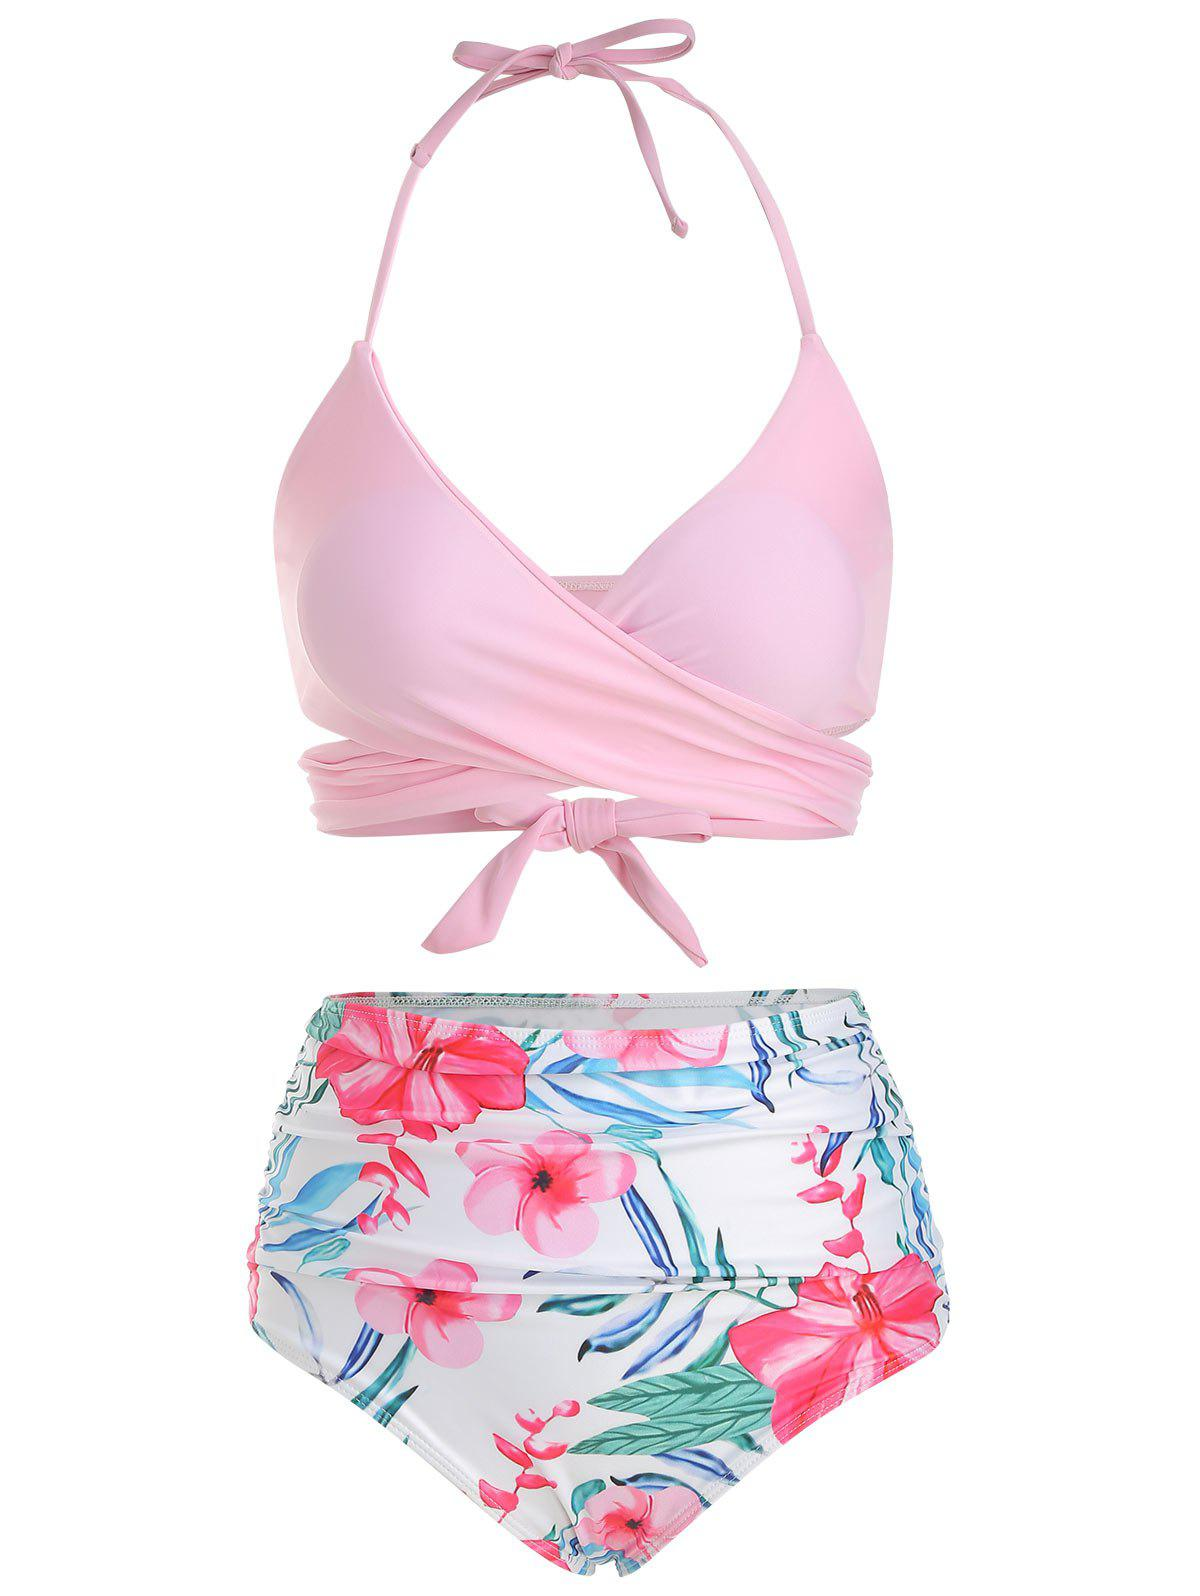 Chic Floral Print Ruched Wrap Bikini Swimsuit